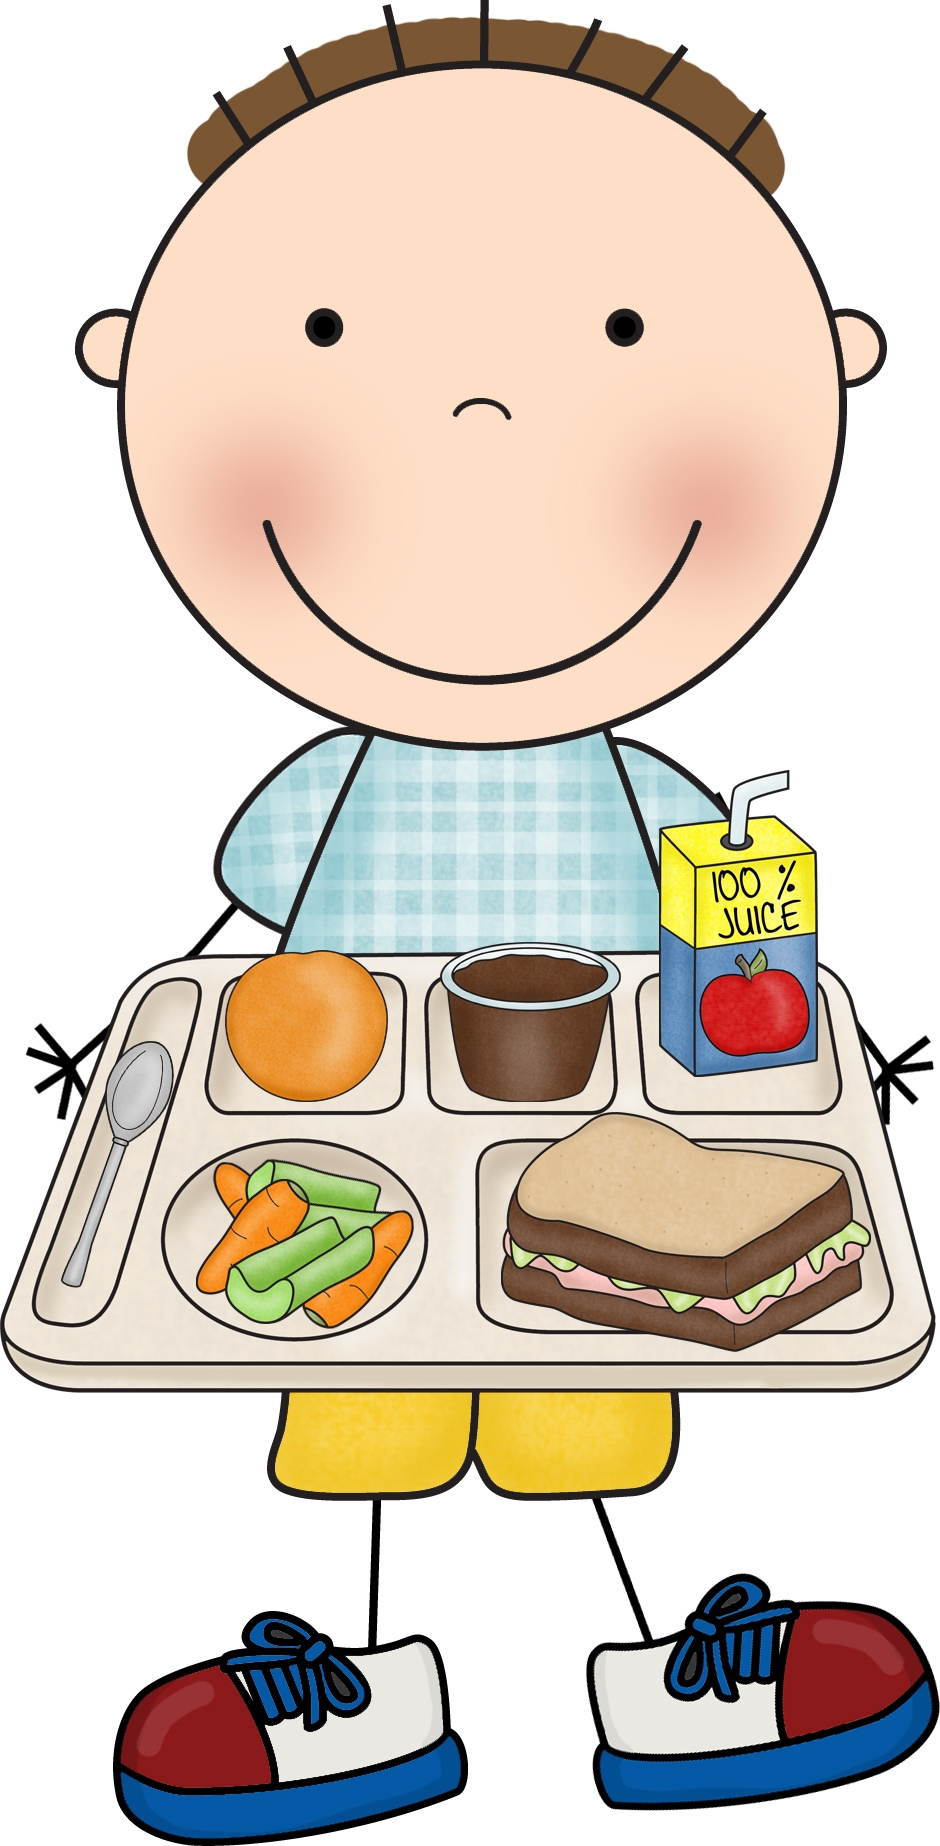 Cafeteria kid lunch canteen. Luncheon clipart student